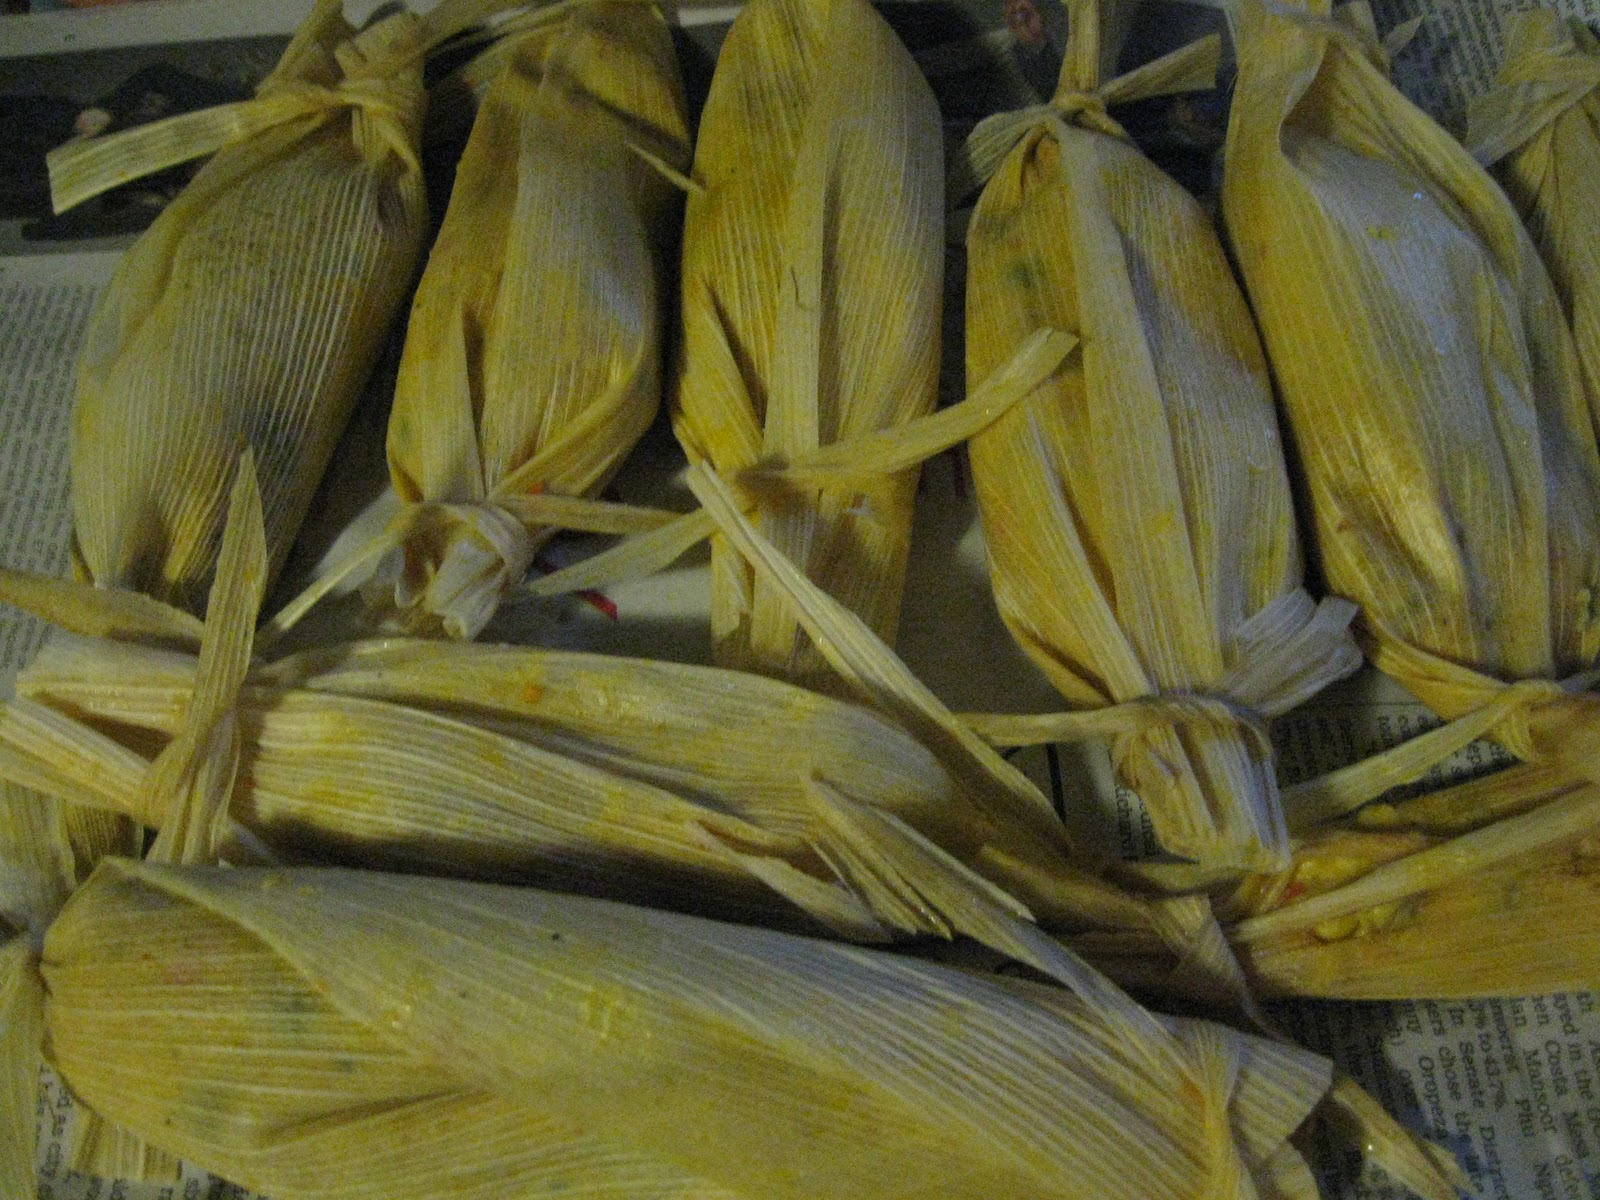 Dollarstoreveg farmers market black bean tamales i used recipes from terry romeros book viva vegan 200 authentic and fabulous recipes for latin food lovers i also have a pot similar to the farberware forumfinder Images